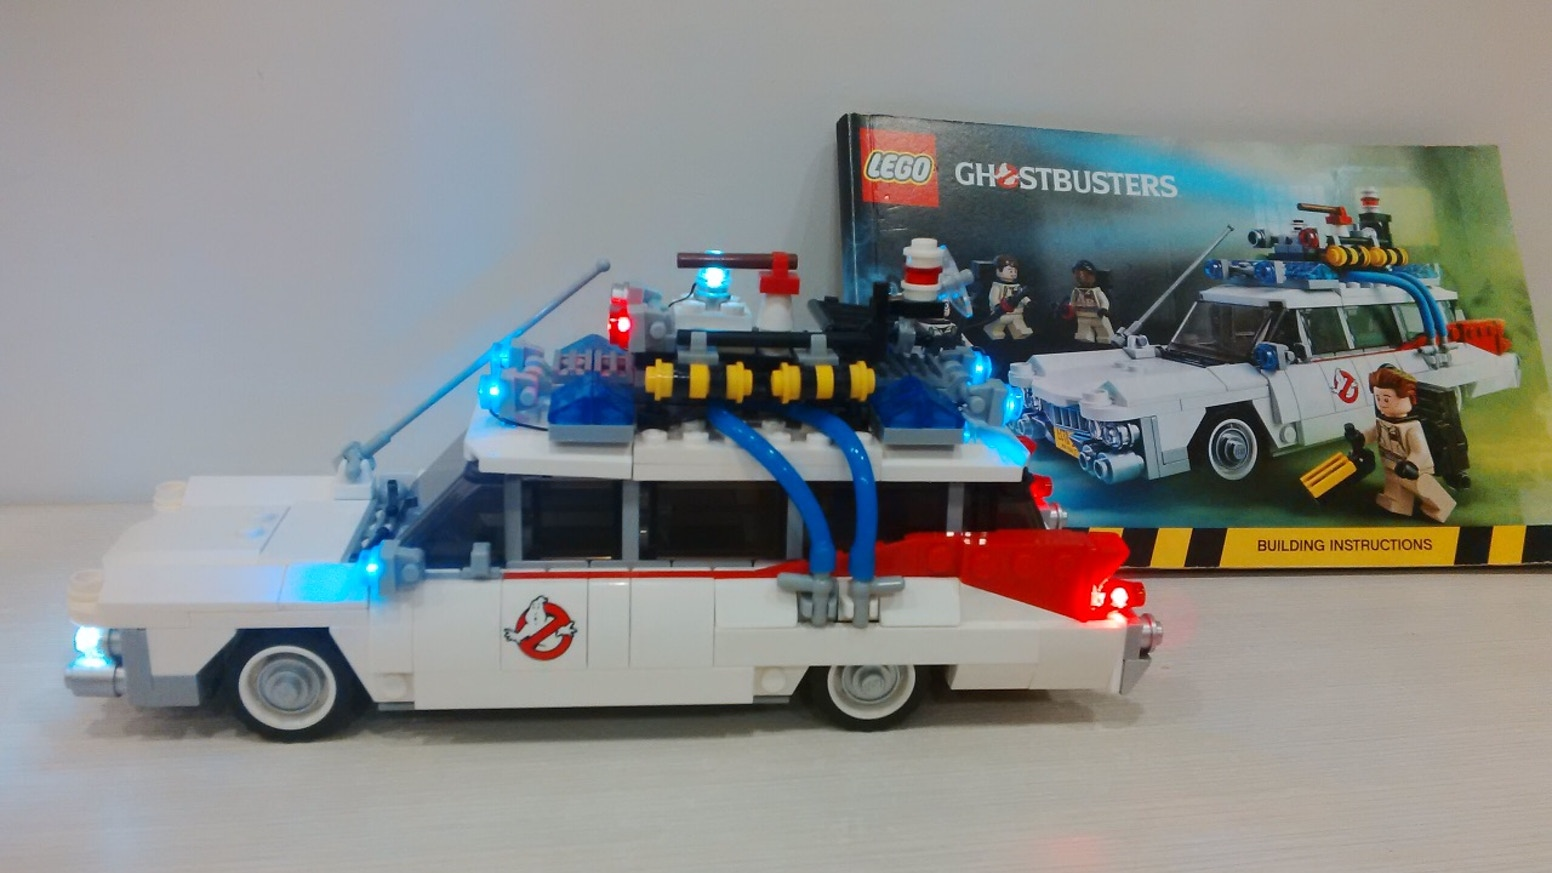 Light up kits for LEGO 21108 Ghostbusters Ecto-1 by